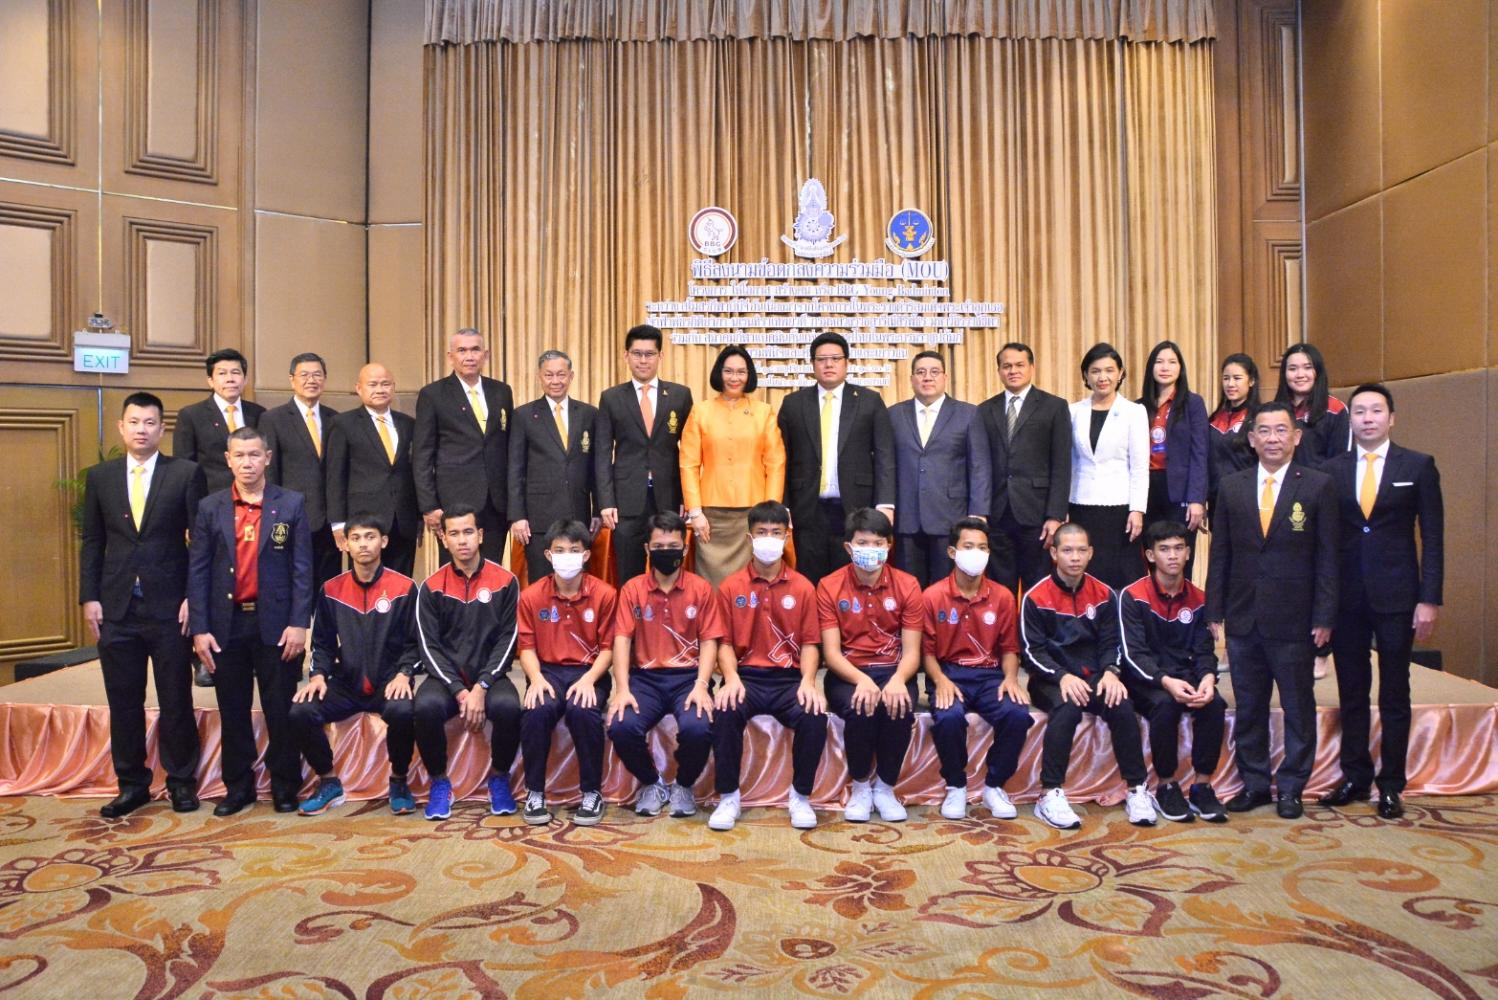 Thai badminton chief Patama Leeswadtrakul, centre, presides over Wednesday's MoU signing ceremony at a Bangkok hotel.